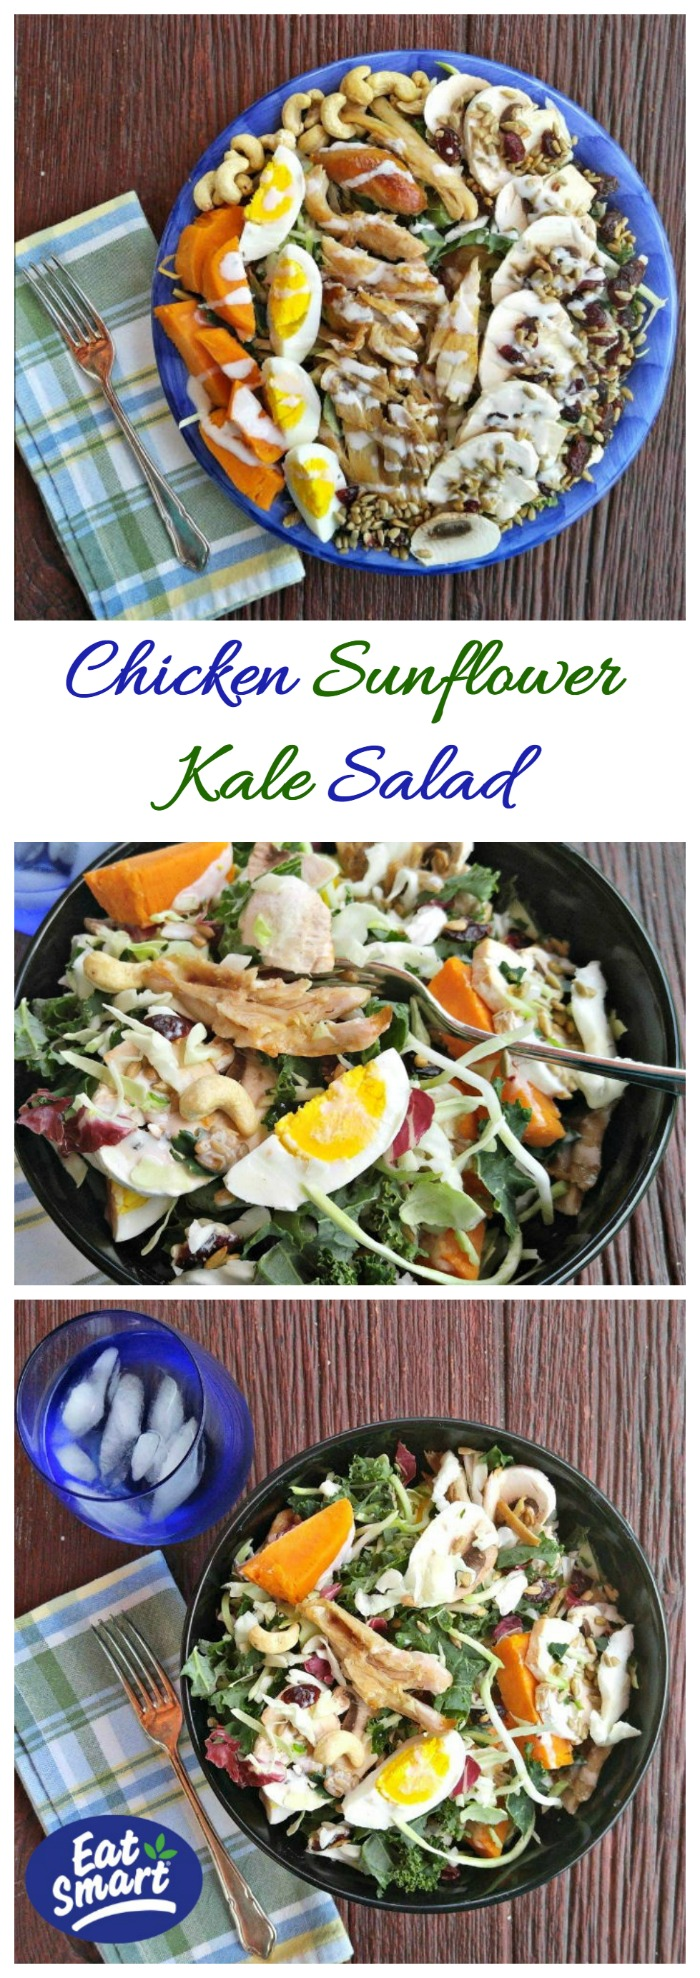 This amazing chicken sunflower kale salad is super easy to make and has sweet potatoes , eggs and loads of superfoods. It is gluten free and so, so tasty! #EatSmartEatClean, #IC, #ad